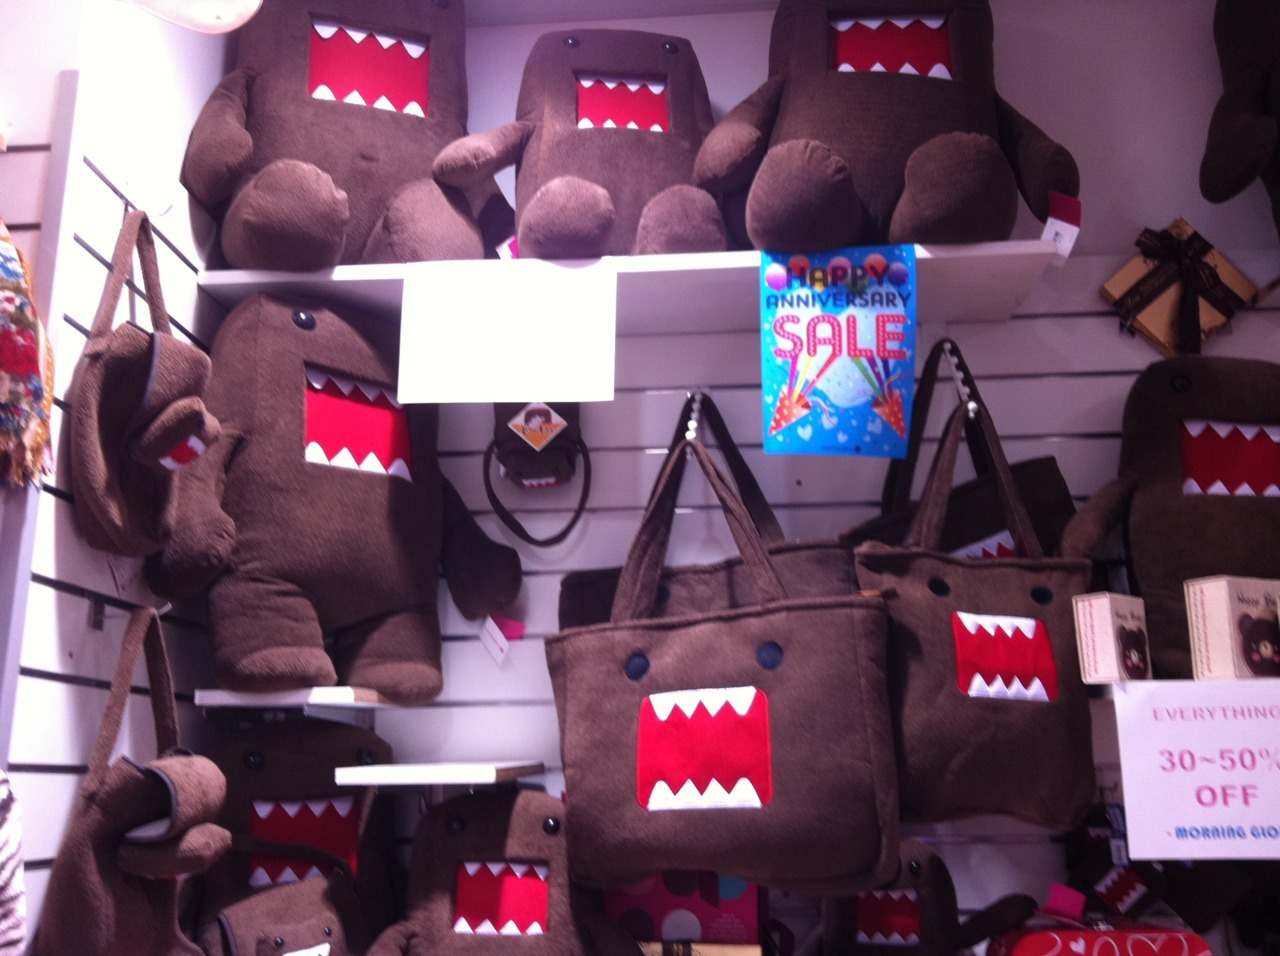 domo kun sale at morning glory! <3 <3